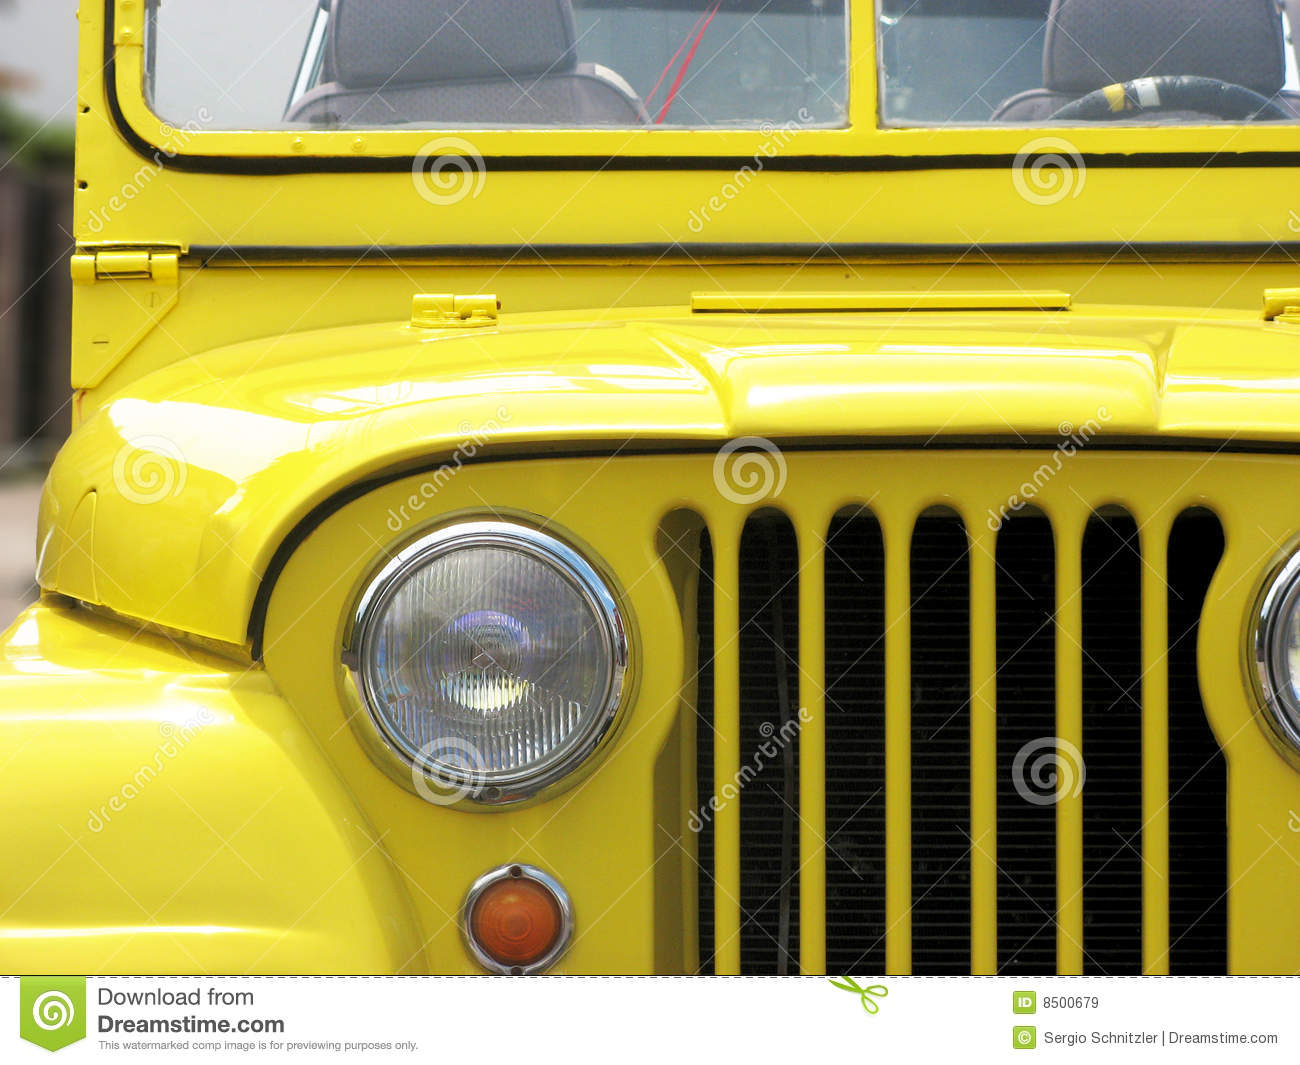 Jeep amarillo Willys